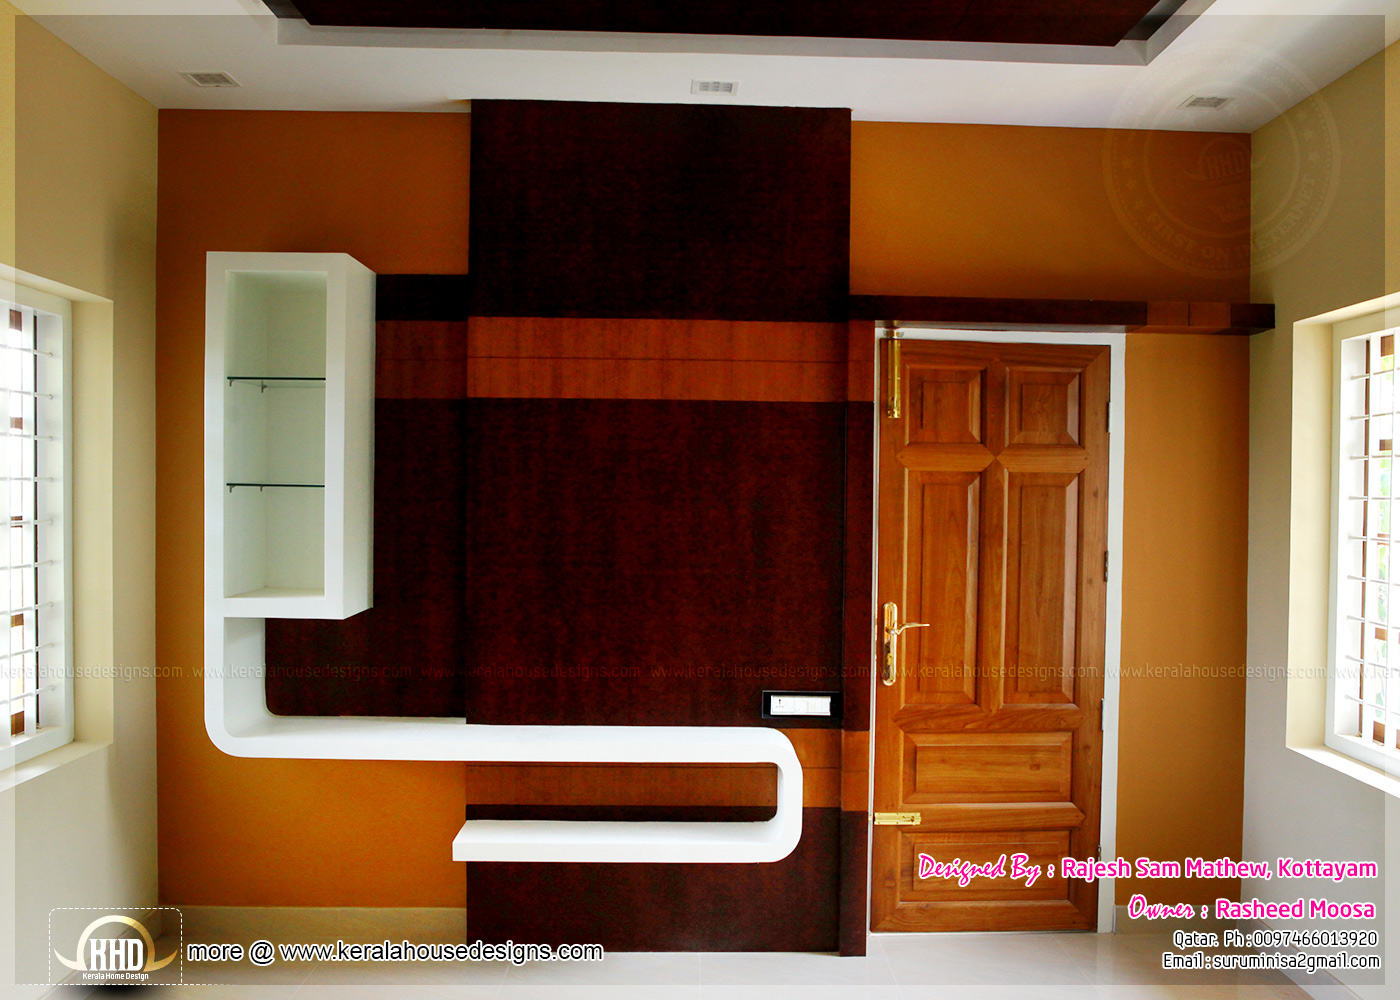 Kerala interior design with photos - Kerala home design and floor ...